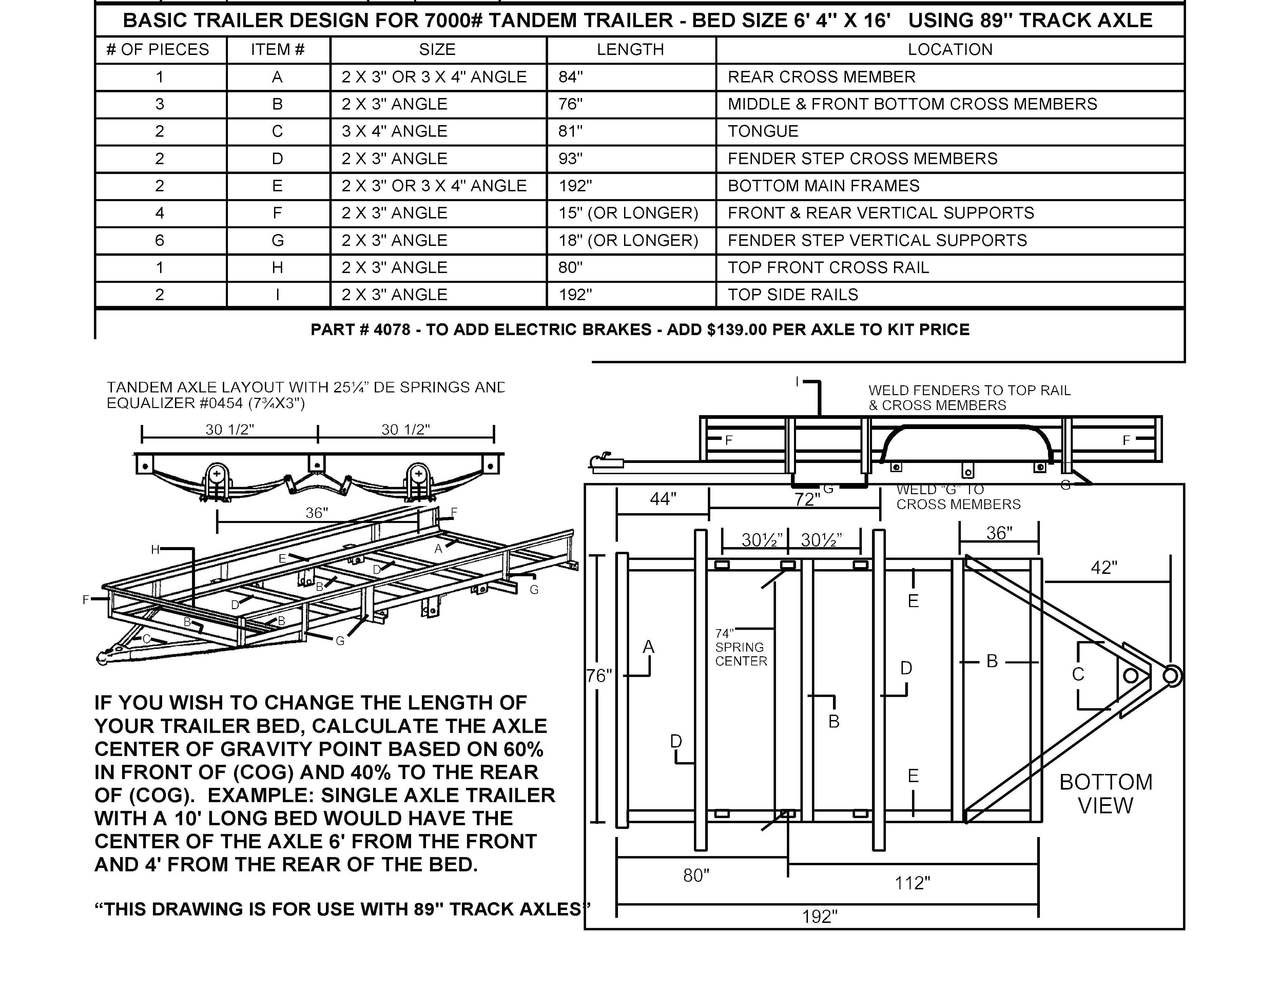 1950 Studebaker Champion Wiring Diagram Libraries Light Circuit For 1956 Passenger Car 95 Electrical U2022build Your Own Utility Trailer With Trailers